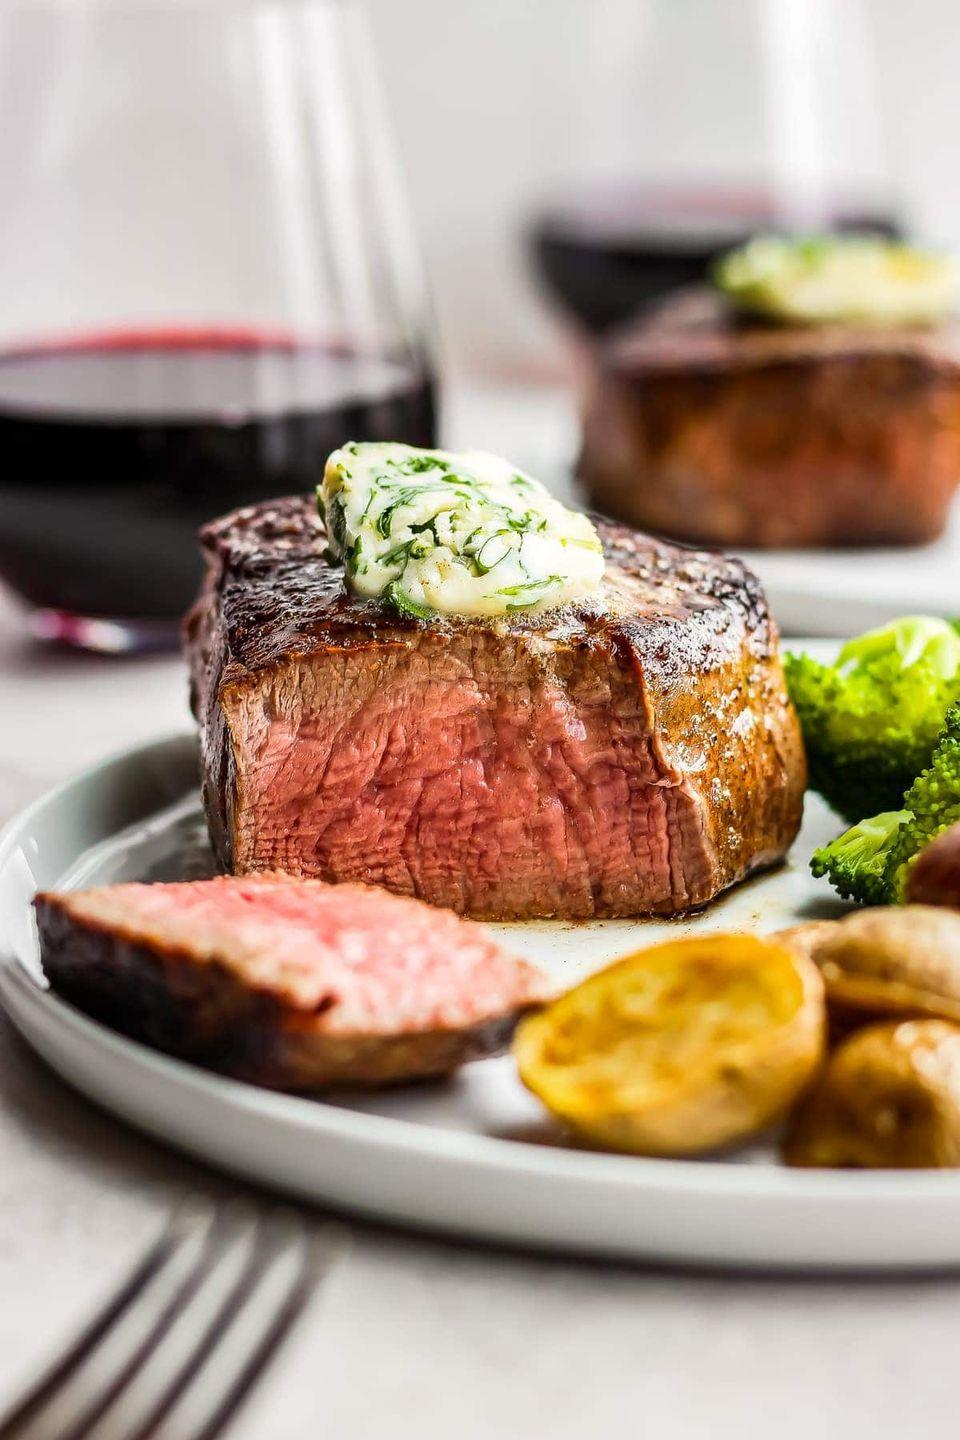 """<p>The words """"easy"""" and """"restaurant"""" don't typically go together in recipe titles, so you're no doubt intrigued by this one. It's an excellent option for Valentine's Day dinner. </p><p><strong>Get the recipe at <a href=""""https://www.thecookierookie.com/restaurant-style-steak/"""" rel=""""nofollow noopener"""" target=""""_blank"""" data-ylk=""""slk:The Cookie Rookie"""" class=""""link rapid-noclick-resp"""">The Cookie Rookie</a>.</strong></p><p><a class=""""link rapid-noclick-resp"""" href=""""https://go.redirectingat.com?id=74968X1596630&url=https%3A%2F%2Fwww.walmart.com%2Fip%2FThe-Pioneer-Woman-Cowboy-Rustic-14-Piece-Forged-Cutlery-Knife-Block-Set-Turquoise%2F53967703&sref=https%3A%2F%2Fwww.thepioneerwoman.com%2Ffood-cooking%2Fmeals-menus%2Fg35191871%2Fsteak-dinner-recipes%2F"""" rel=""""nofollow noopener"""" target=""""_blank"""" data-ylk=""""slk:SHOP KNIVES"""">SHOP KNIVES</a></p>"""